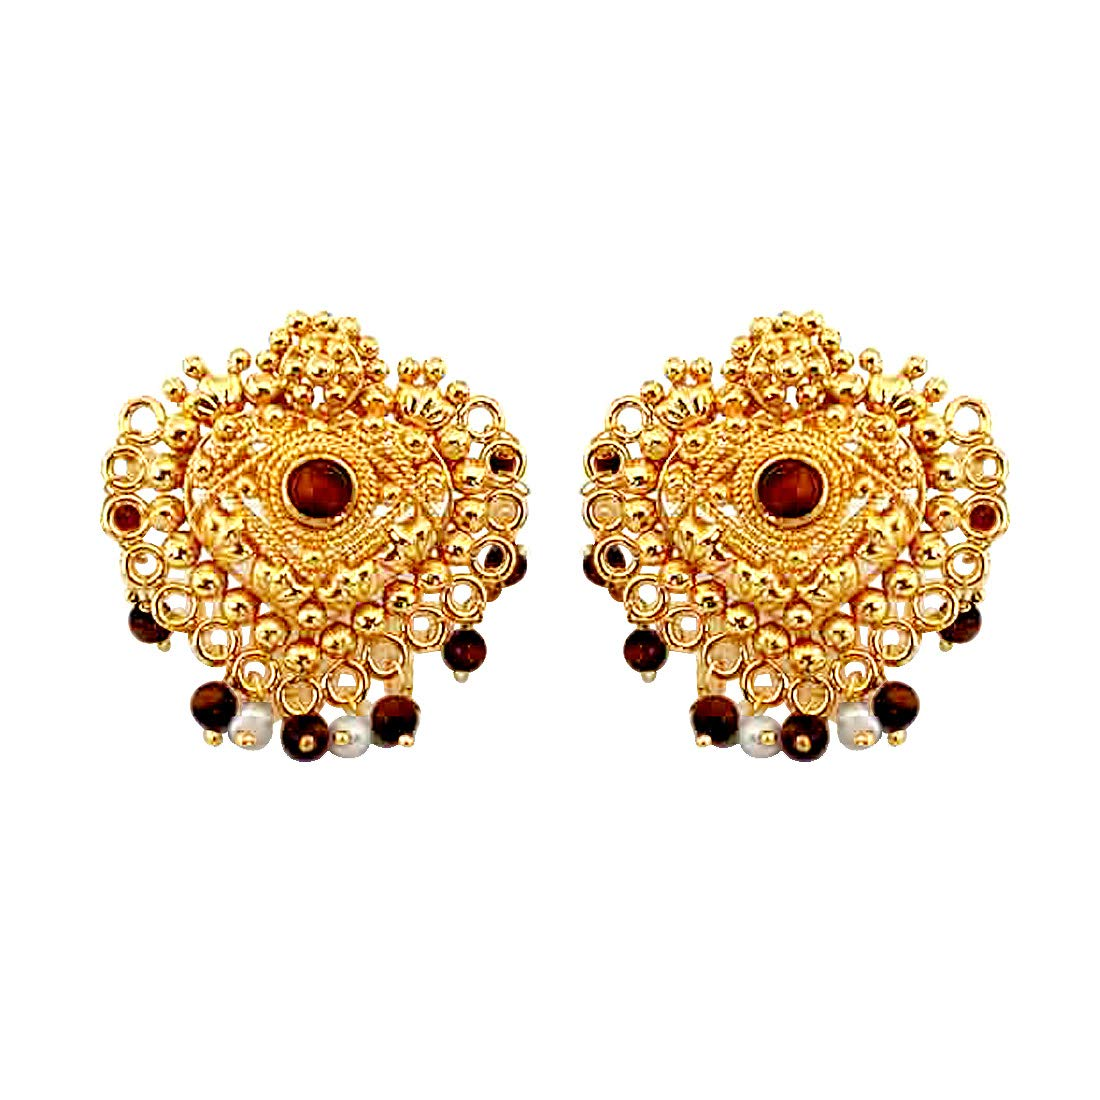 Bewildering Blingers - Temple Design Real Freshwater Pearl, Brown Tiger Eye & Gold Plated Earrings for Women (SE38)